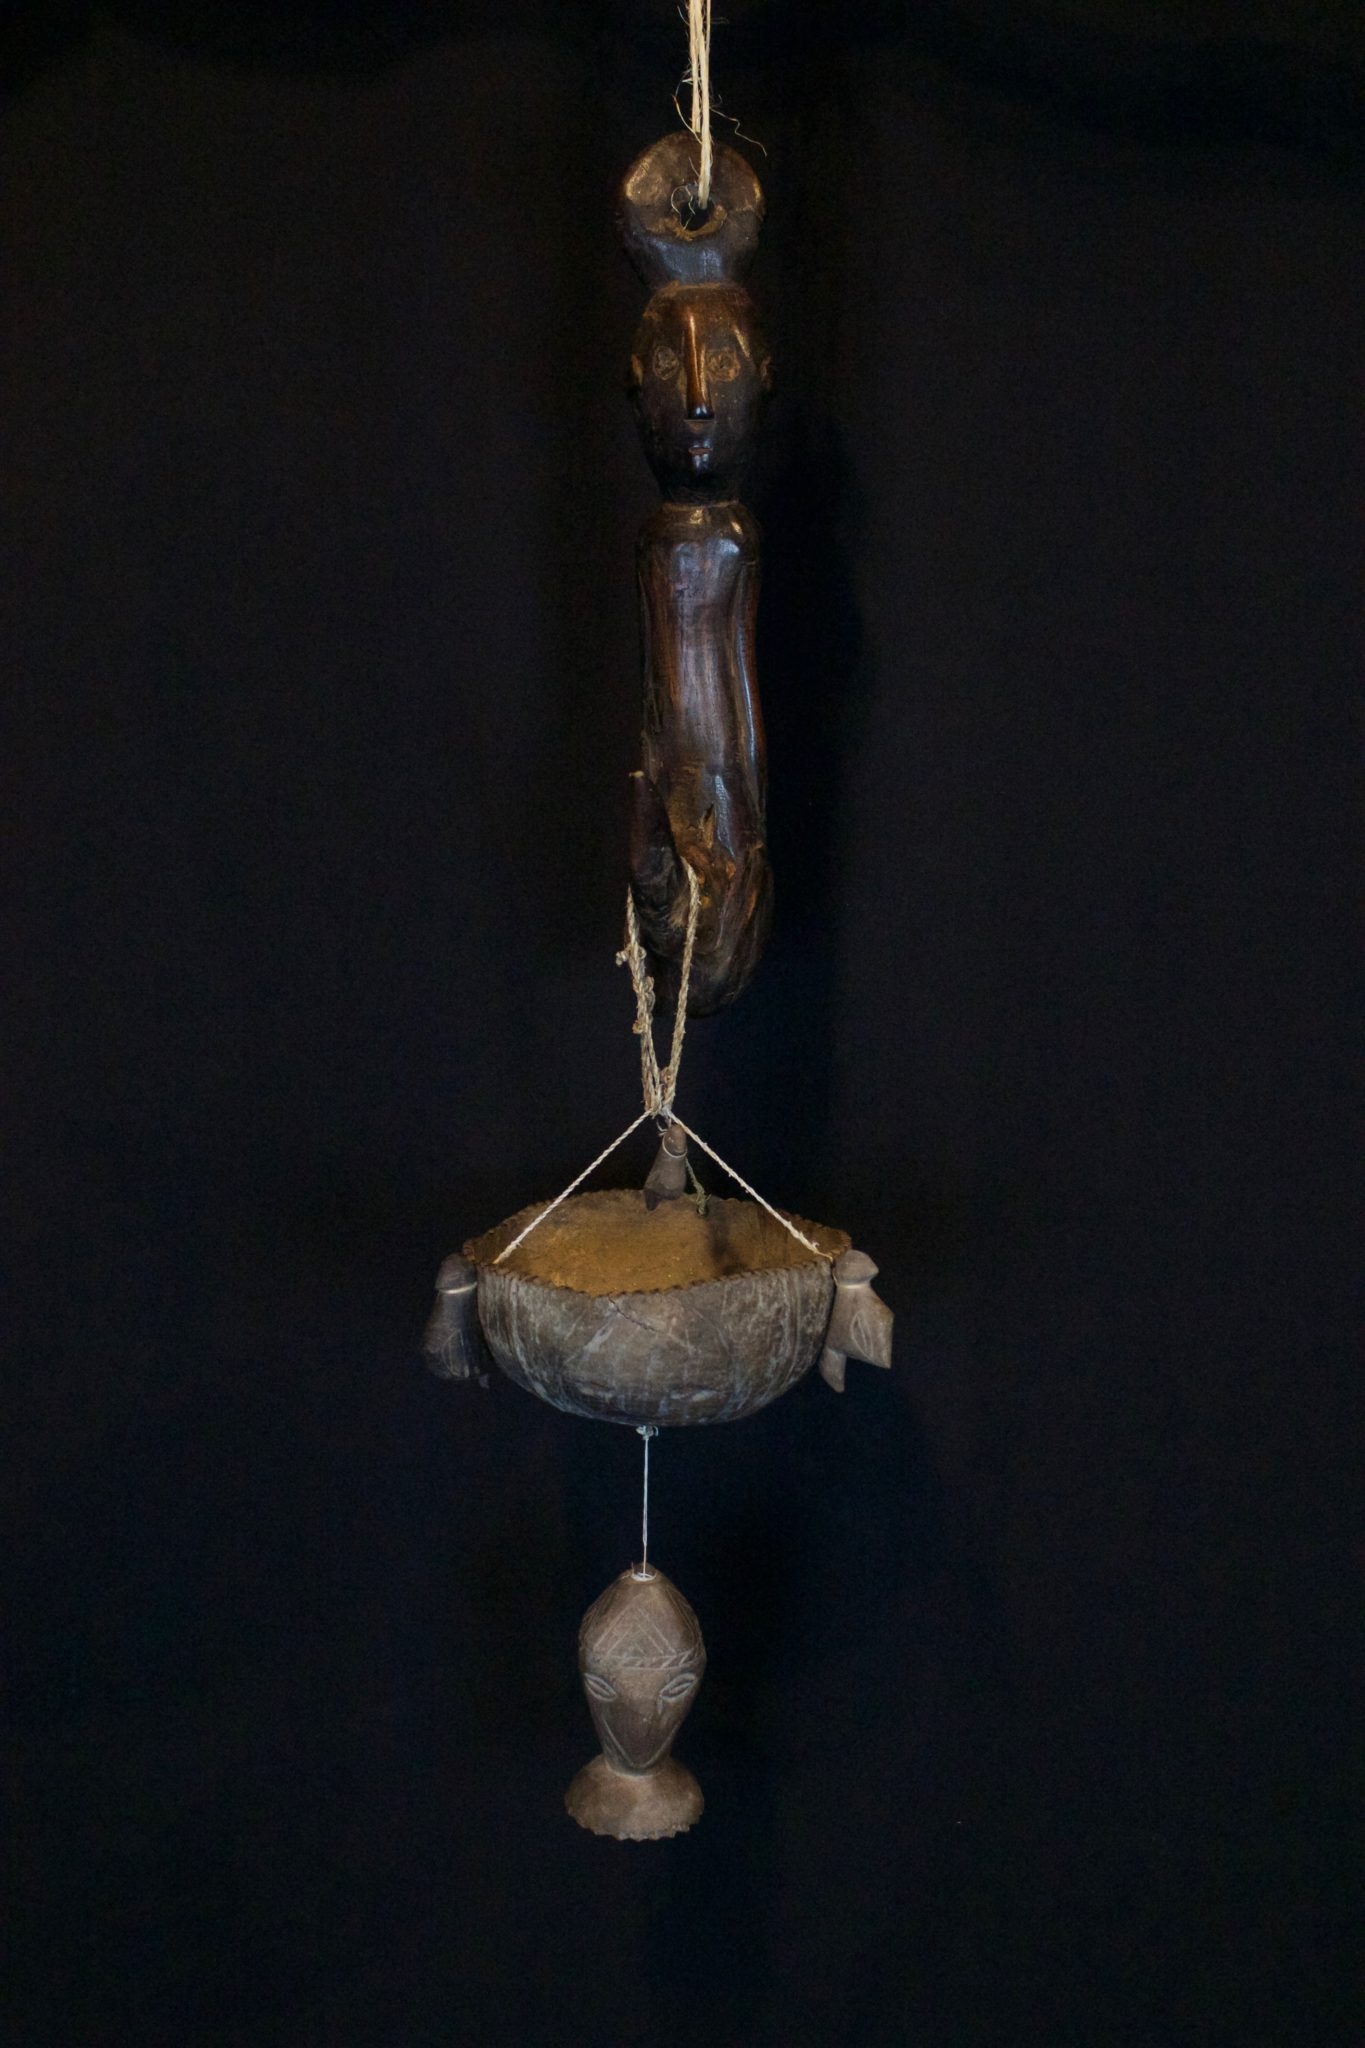 """Hanging Effigy and Herb Bowl - set, East Sumba Island, Indonesia, Soru village, Early 20th c, Wood, coconut, fiber string. The effigy hanger gives great healing power to the herbs placed in the coconut bowl suspended below it. The bowl has three bird figure and three carved faces with an amulet head hanging below it. 30"""" x 6"""" x 6"""", $1200."""